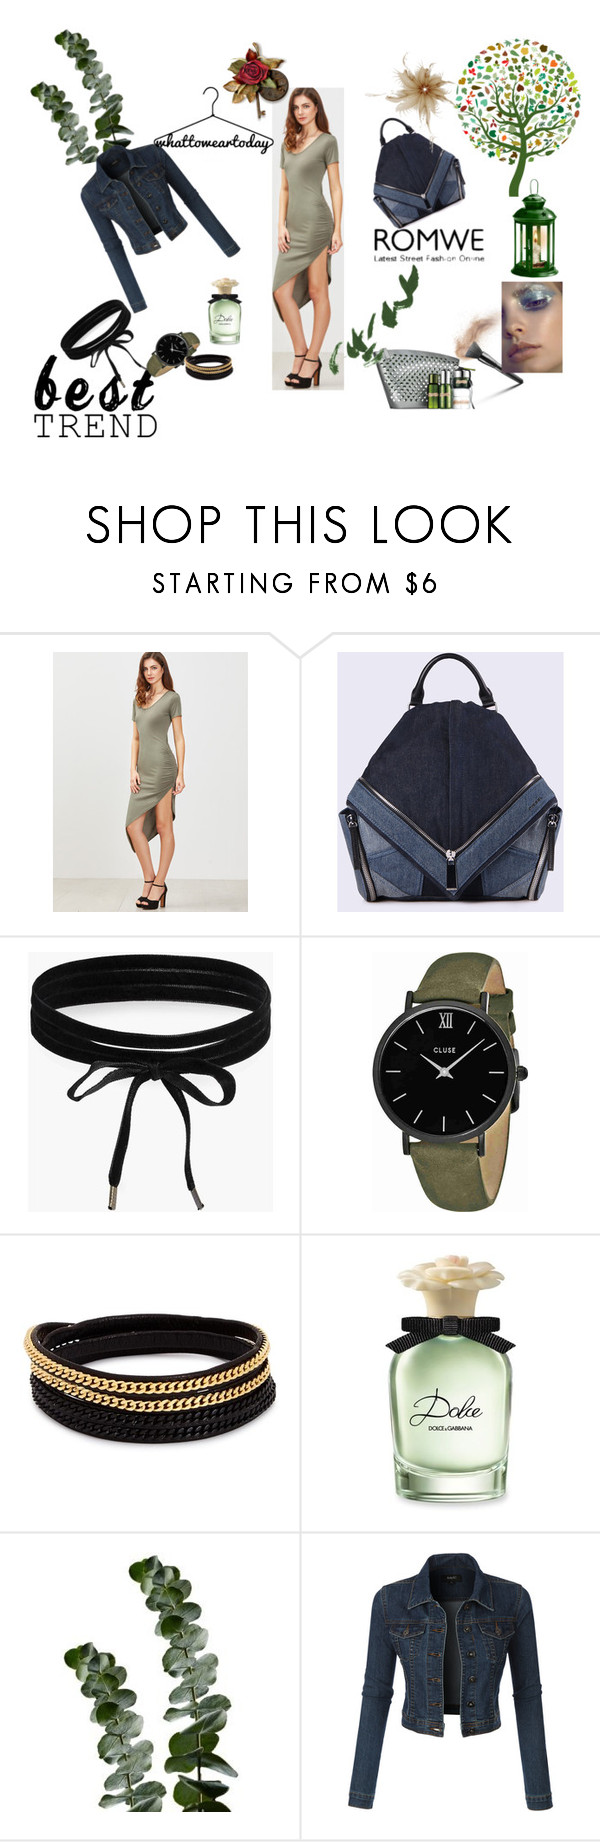 """ARMY-GREEN DRESS"" by lamija2015 ❤ liked on Polyvore featuring Diesel, Boohoo, CLUSE, Vita Fede, Dolce&Gabbana, L'Oréal Paris and LE3NO"